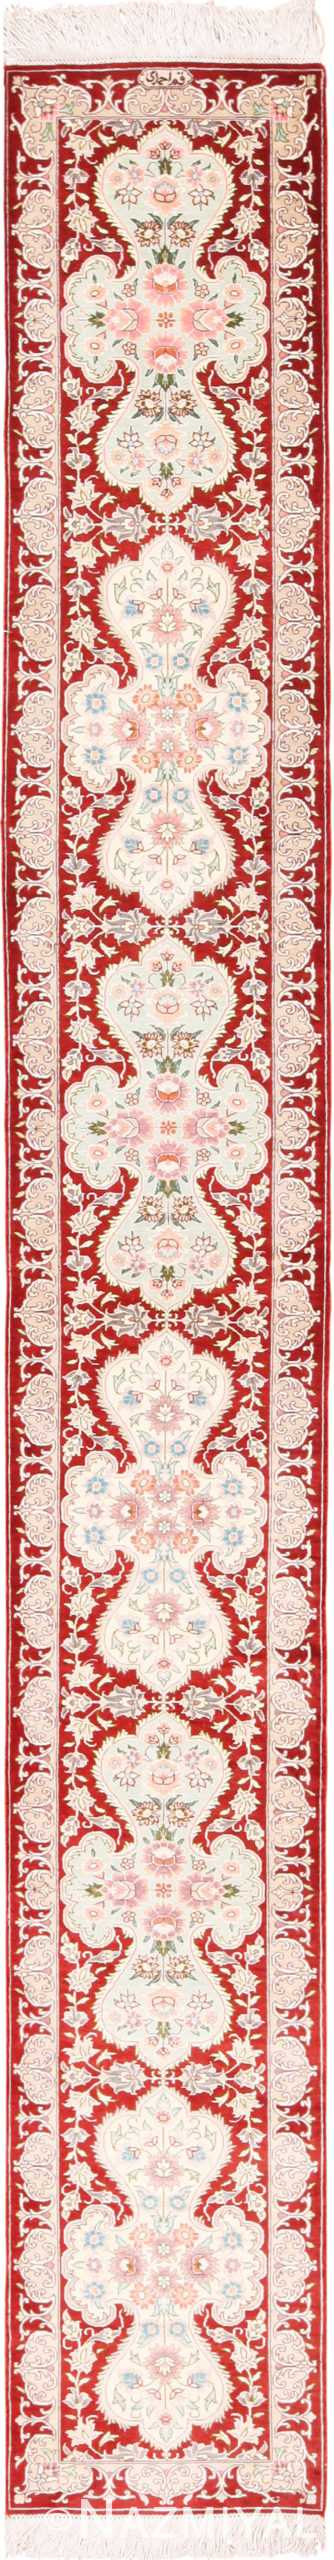 Narrow Vintage Red Persian Silk Qum Rug Runner 49603 by Nazmiyal